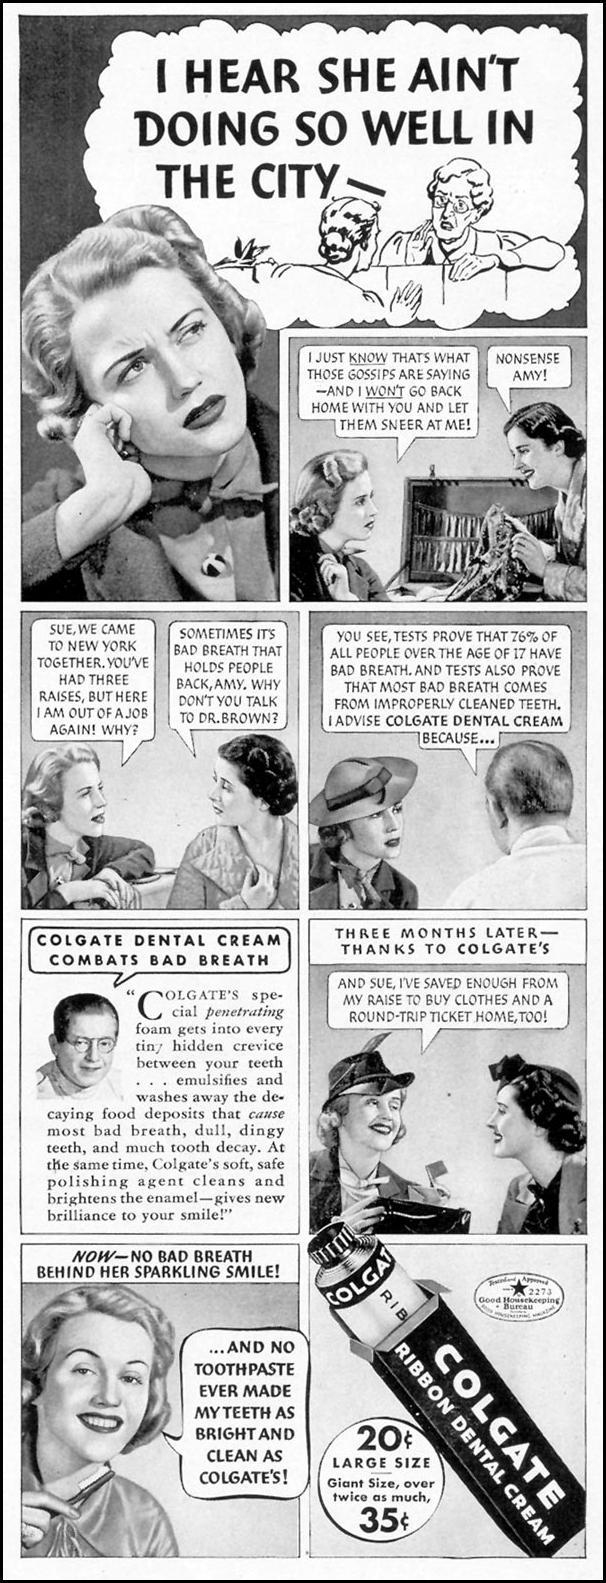 COLGATE DENTAL CREAM LIFE 09/20/1937 p. 17